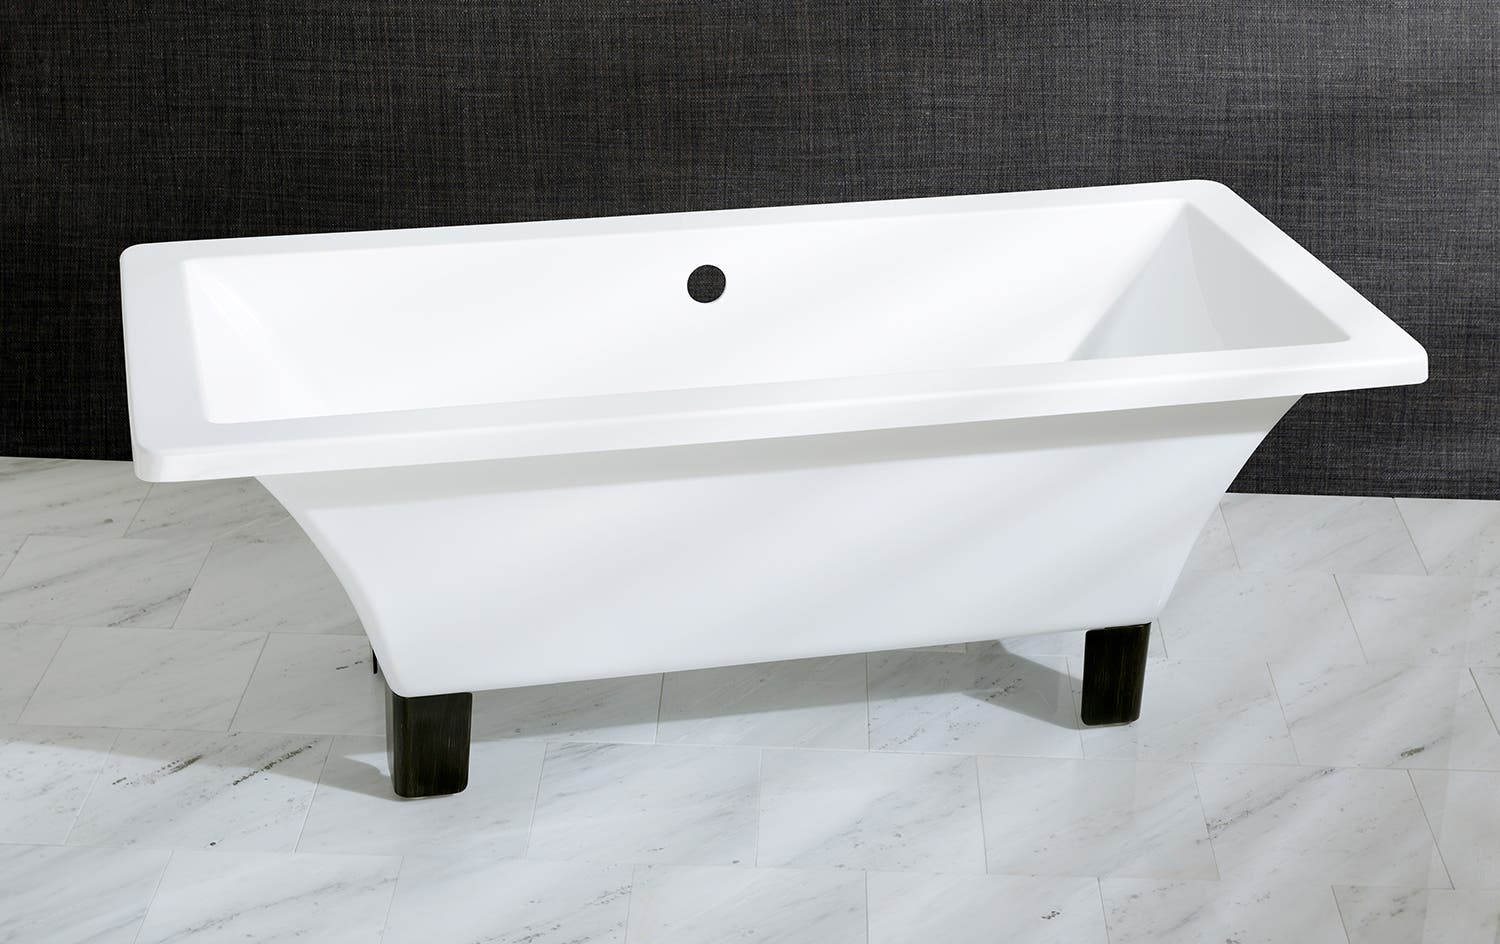 Tips On Surrounding Your Clawfoot Tub With The Ultimate